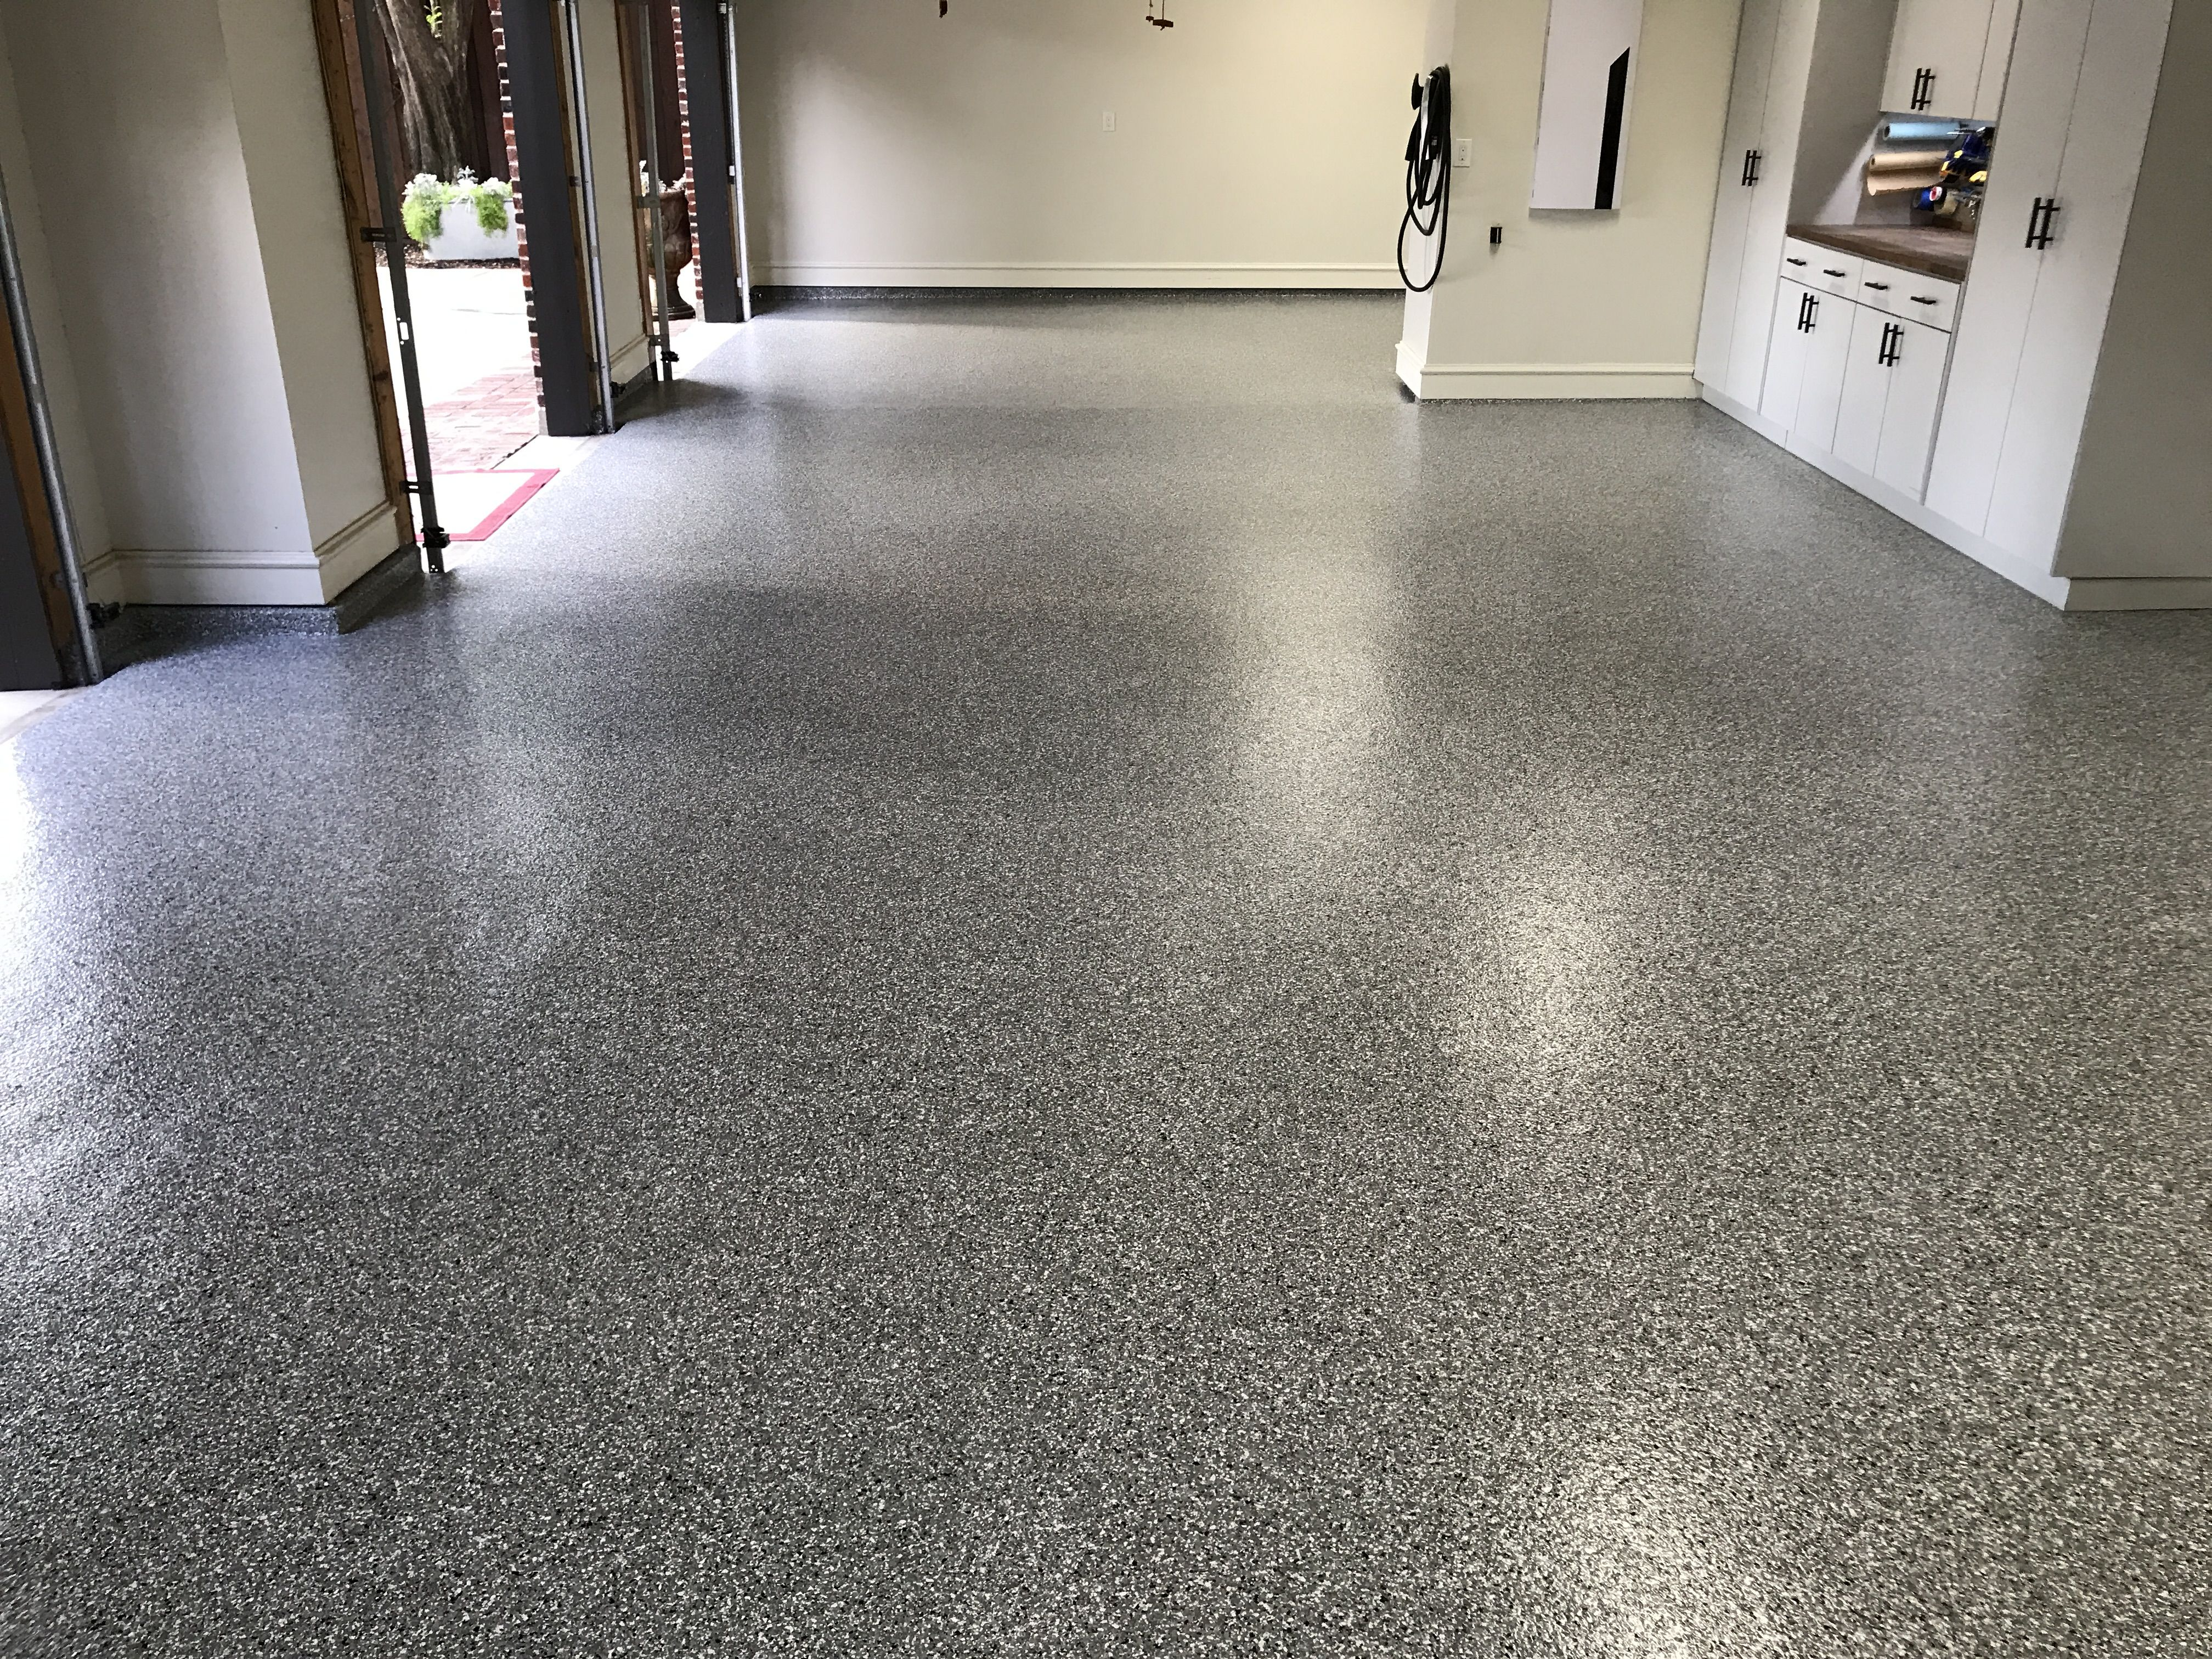 Classic Full Flake Garage Floor System In Silver Spring